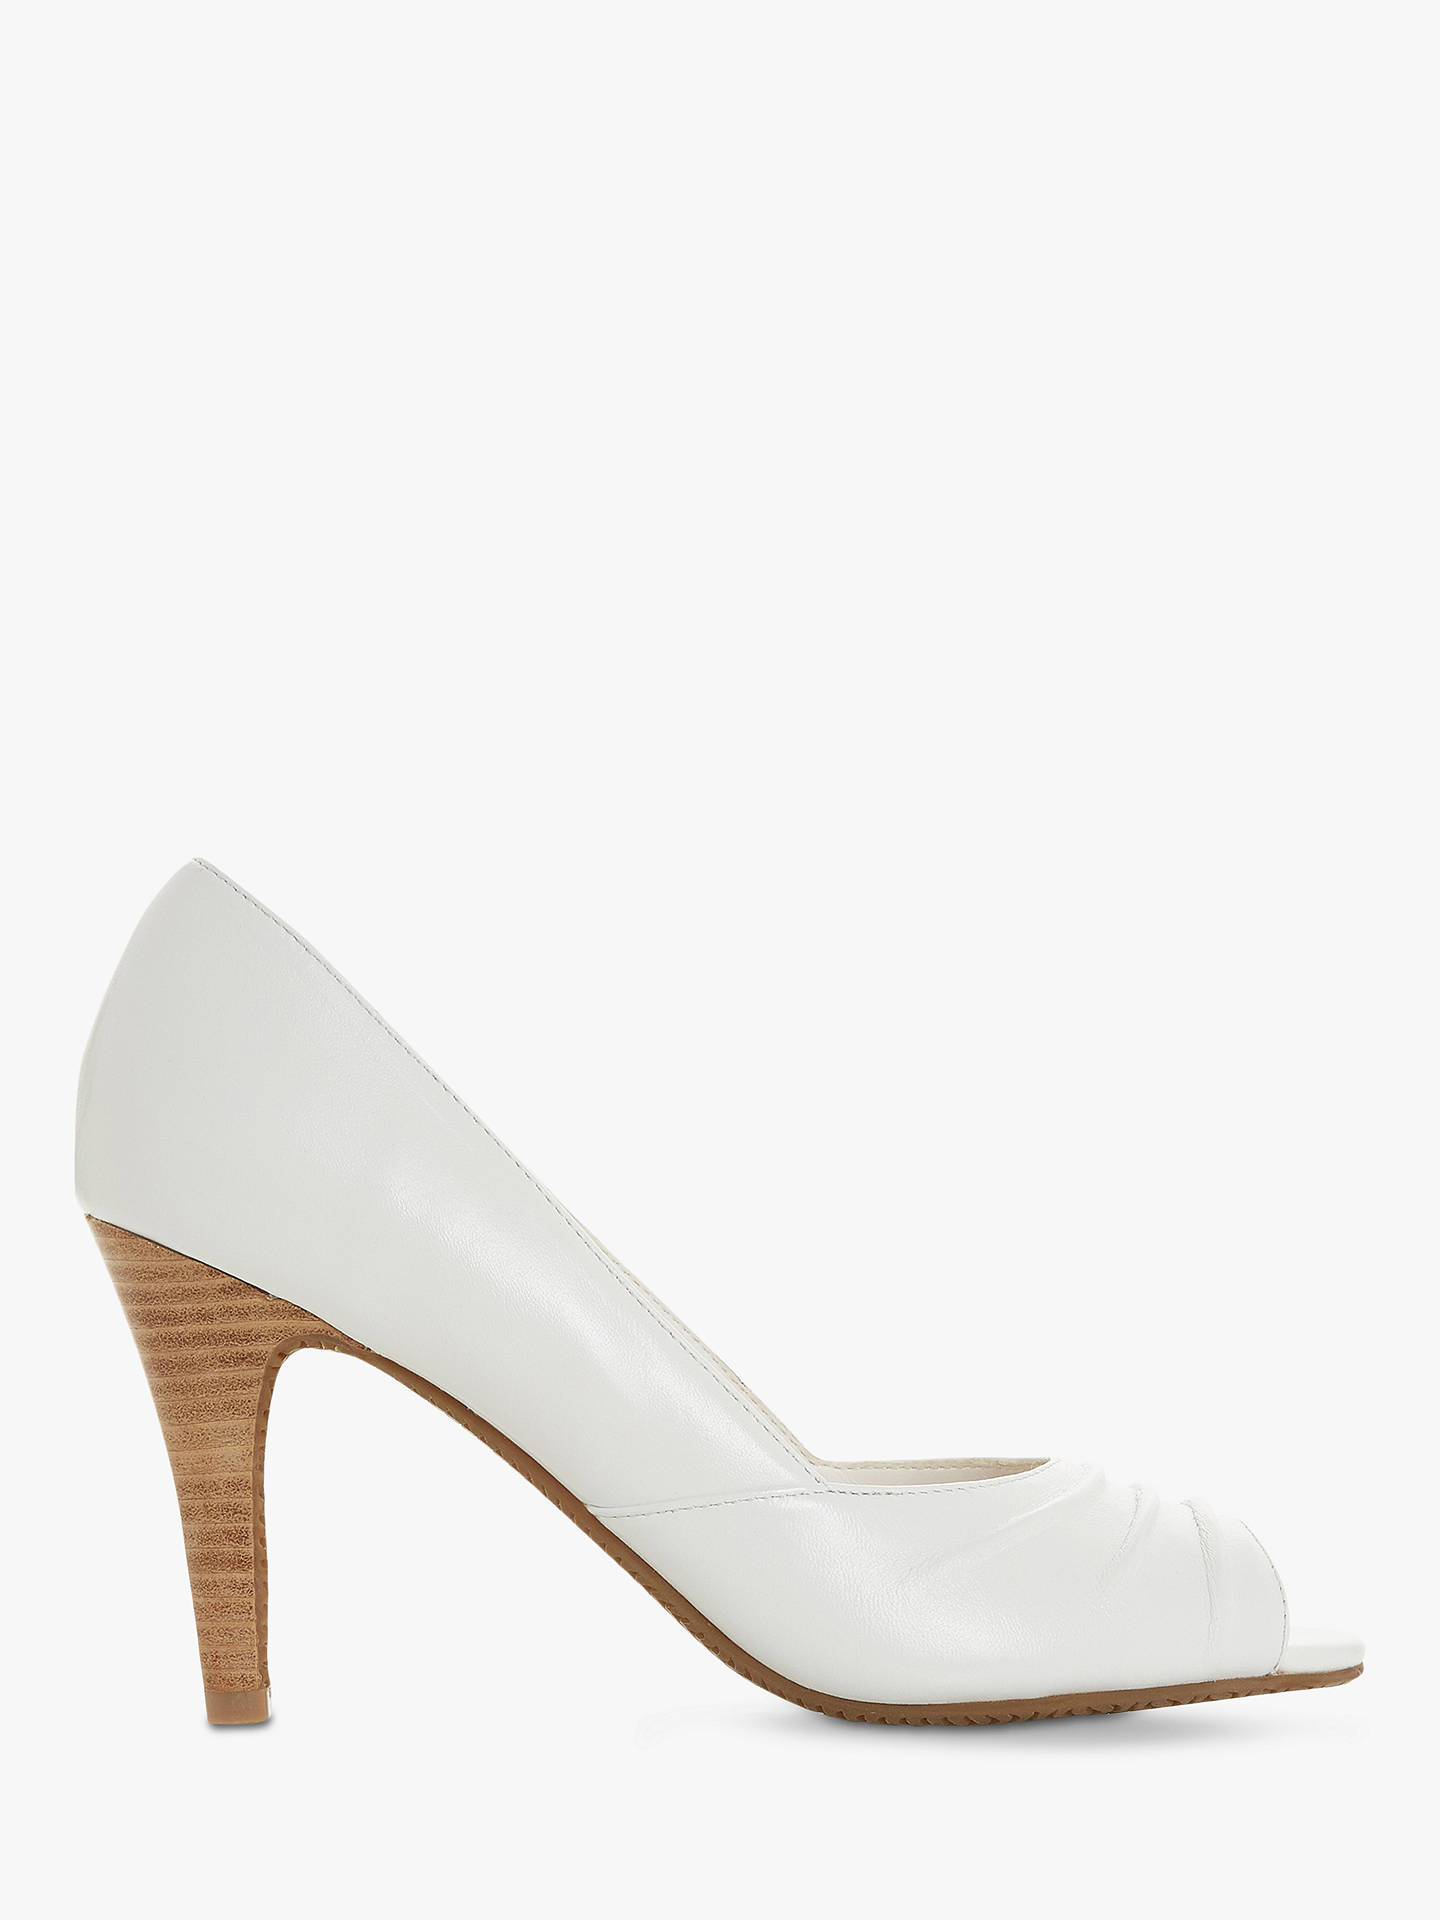 b08107b4219f Buy Dune Christey Open Toe Court Shoes, White Leather, 8 Online at  johnlewis.